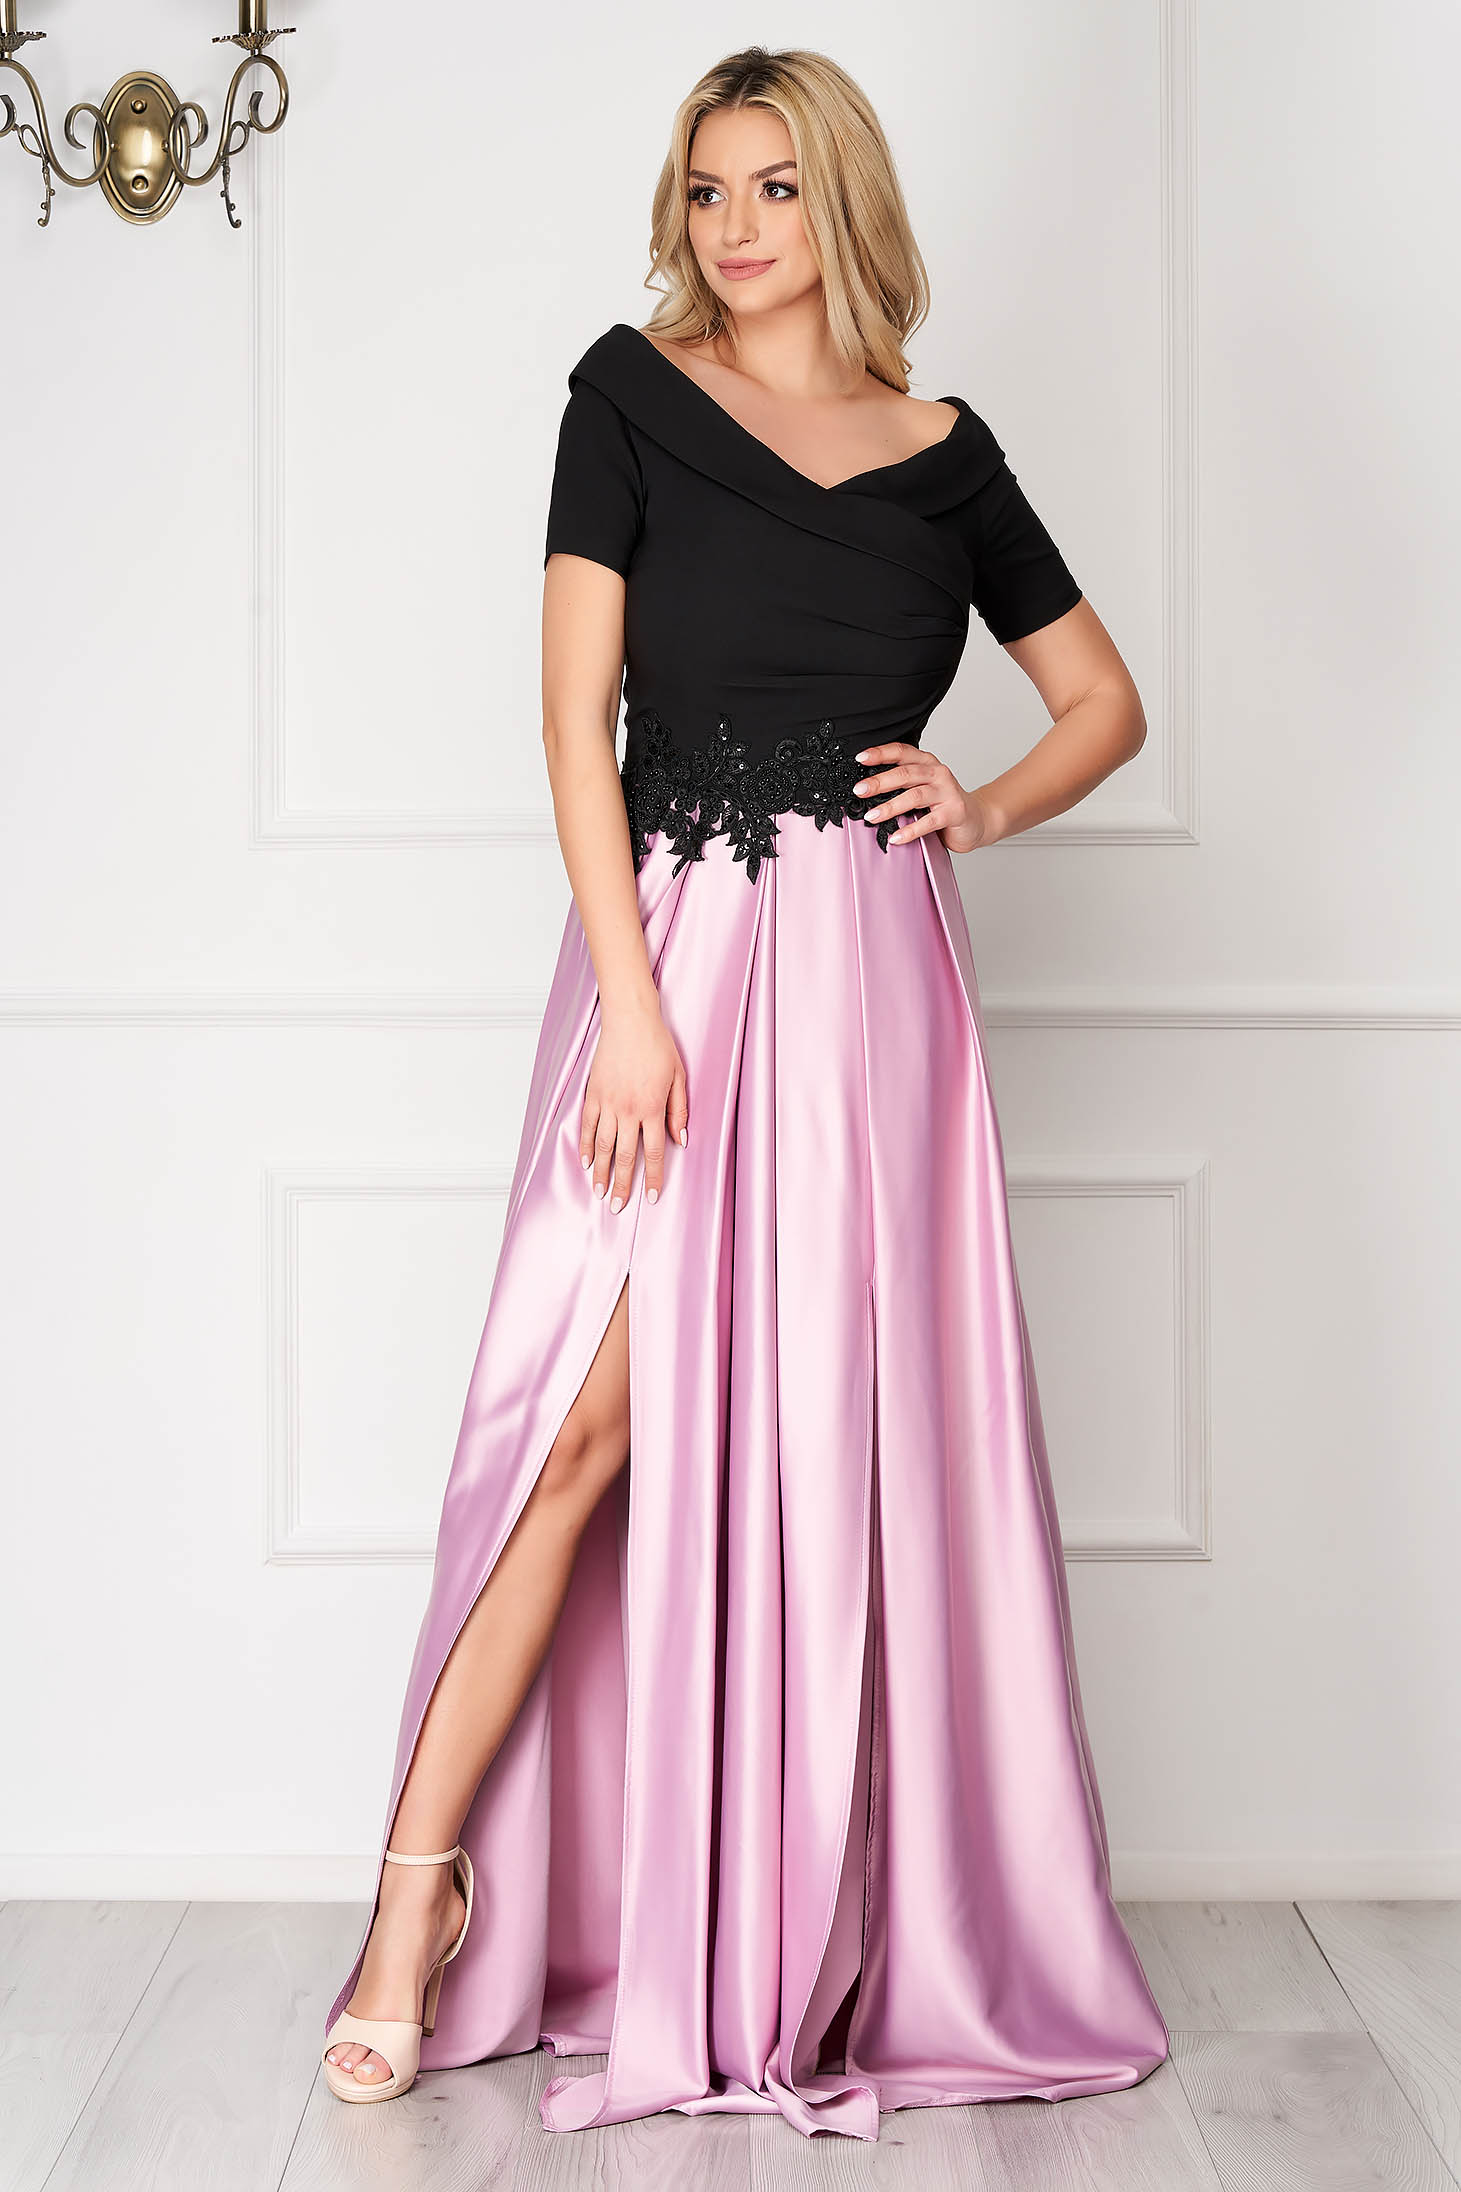 Lightpink dress from satin cloche occasional slit on the shoulders with embellished accessories